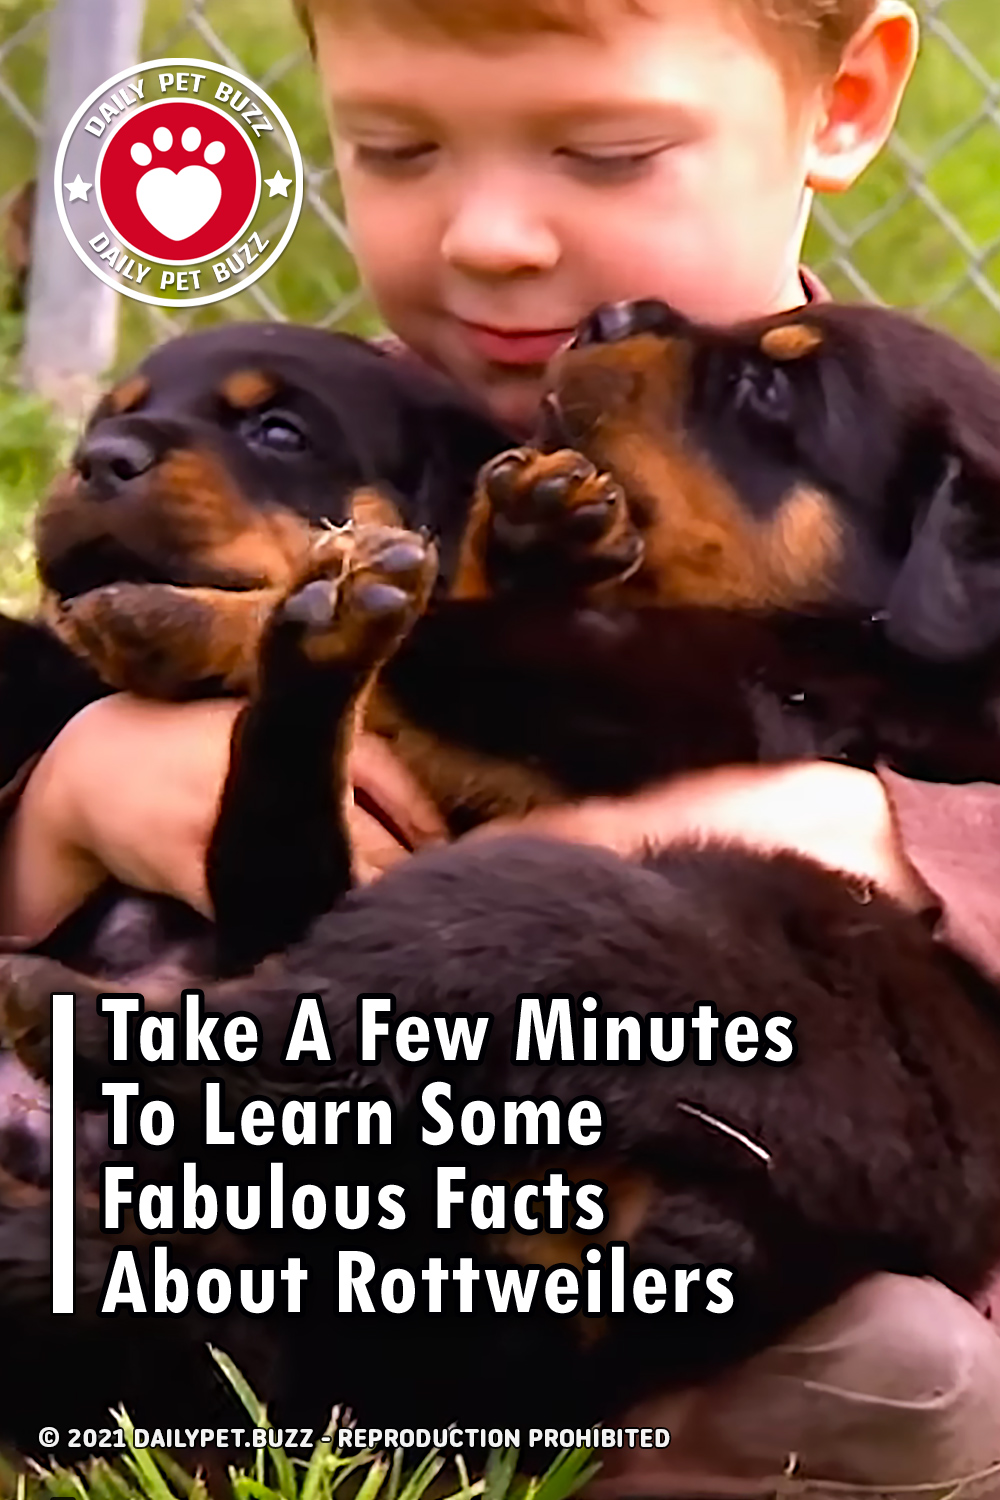 Take A Few Minutes To Learn Some Fabulous Facts About Rottweilers